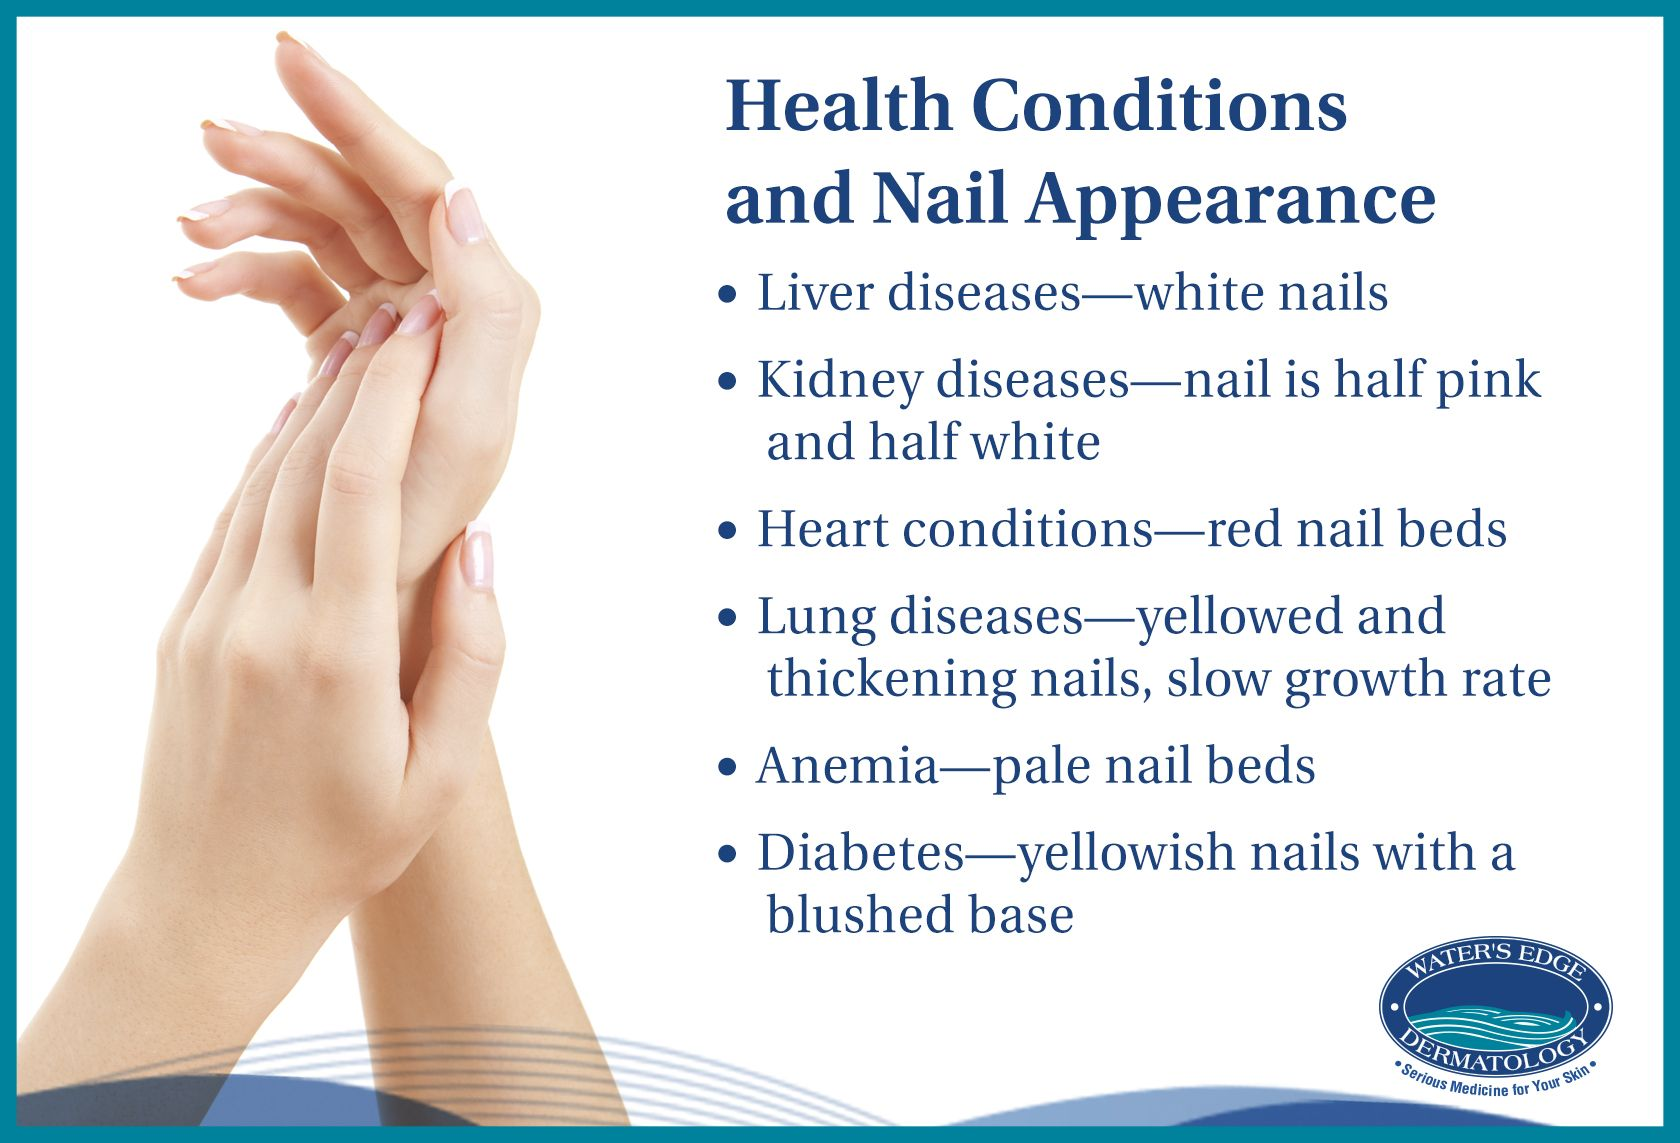 Your nails can reveal underlying health conditions, which